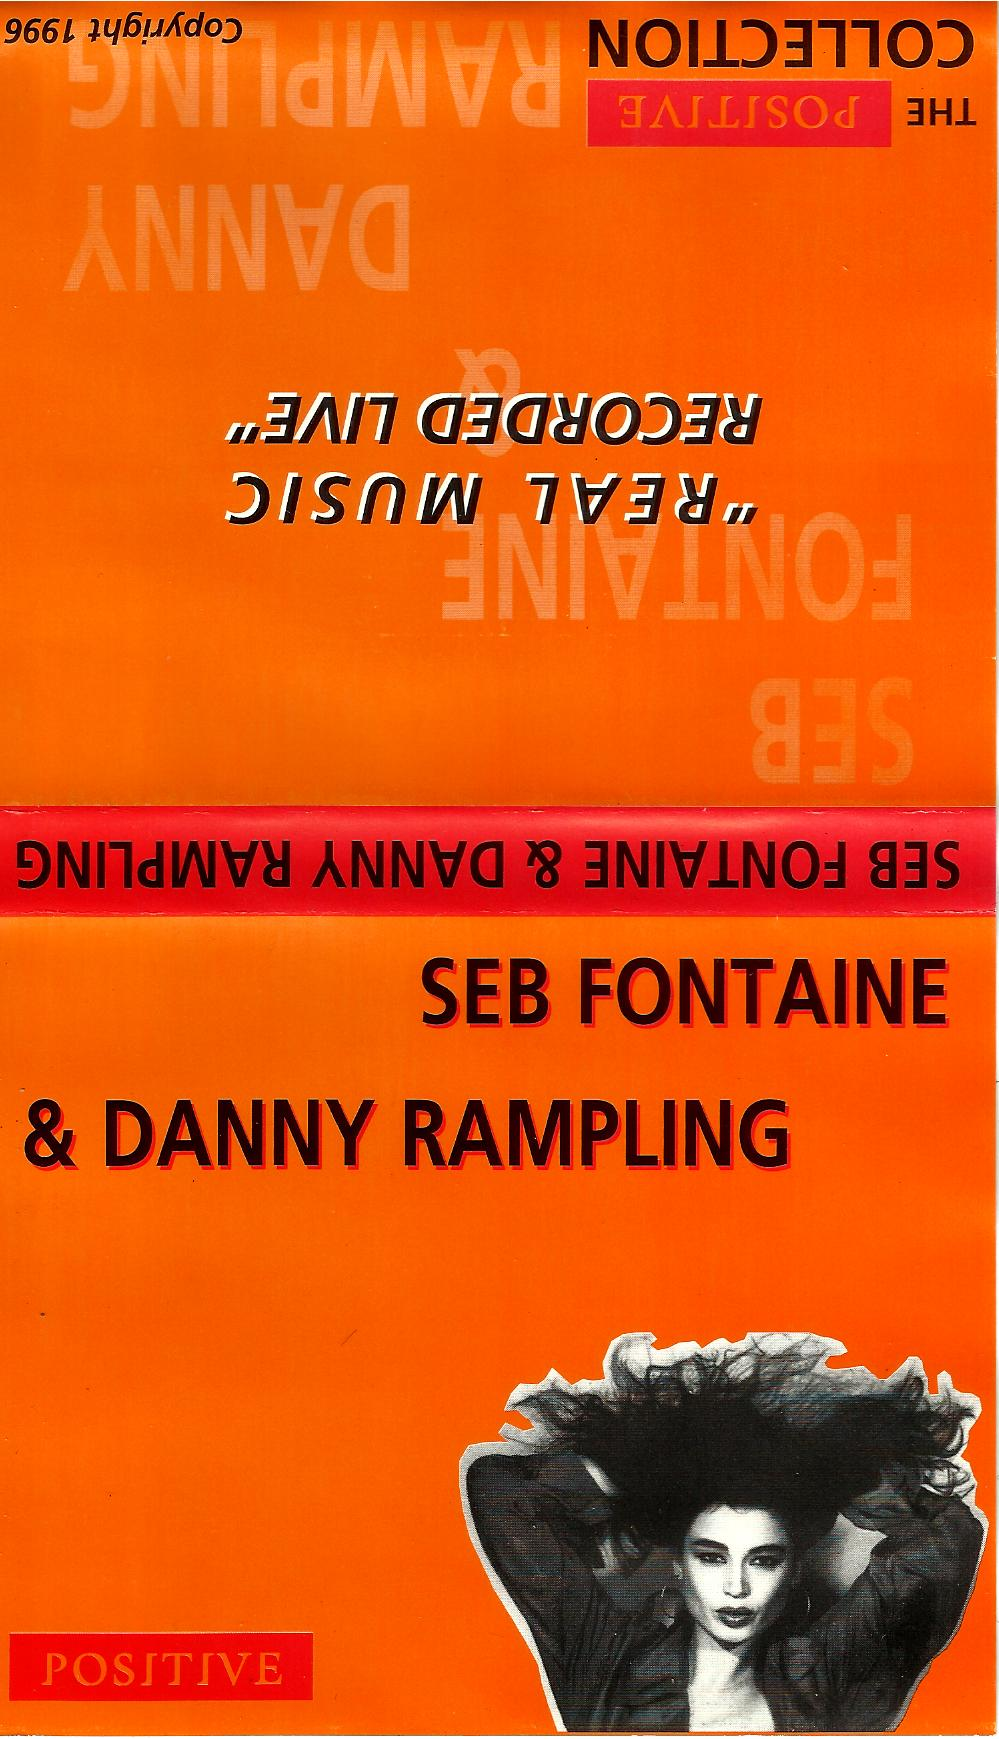 Danny Rampling Positive Collection 1996.jpg